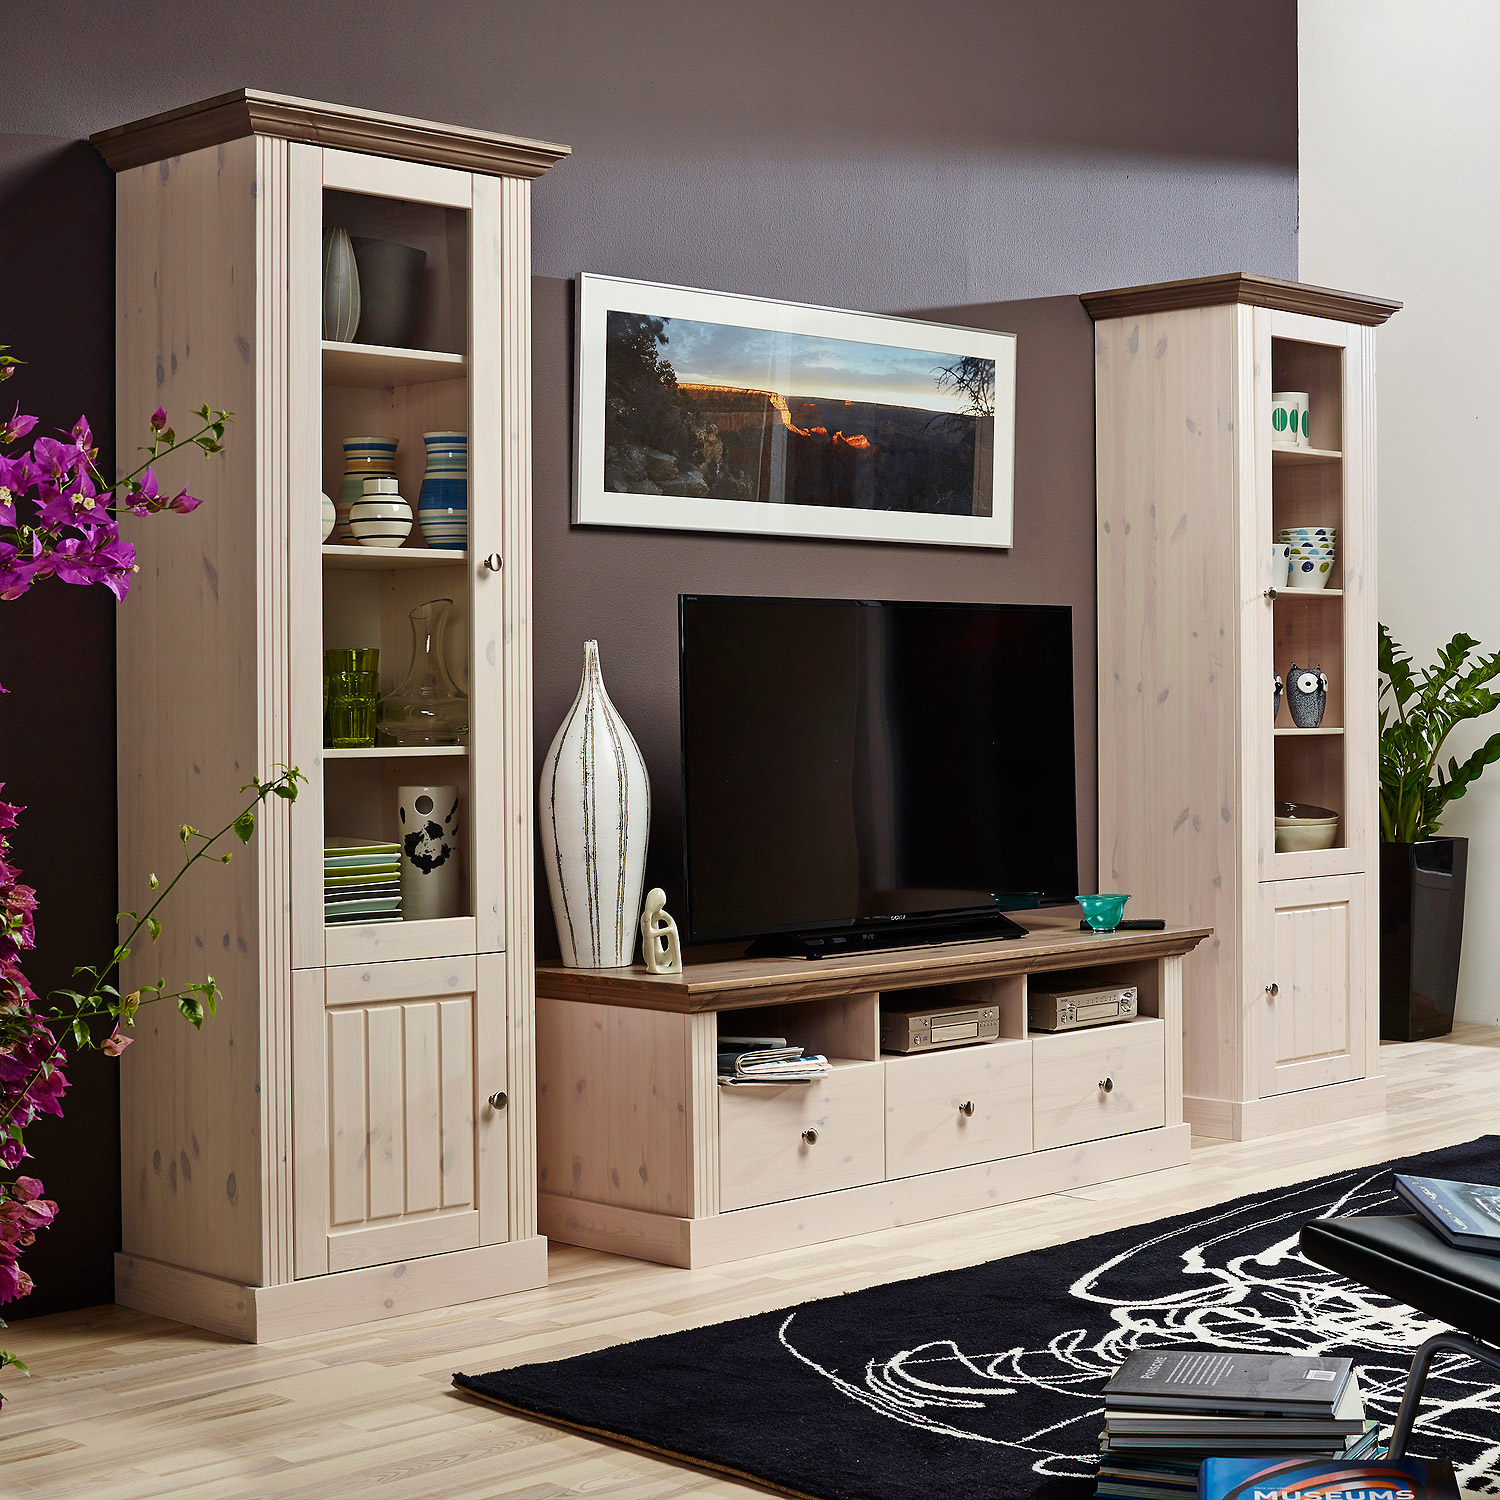 edle wohnwand beautiful wohnwand tv fernsehwand wildeiche gelt massiv natur rustikal with edle. Black Bedroom Furniture Sets. Home Design Ideas